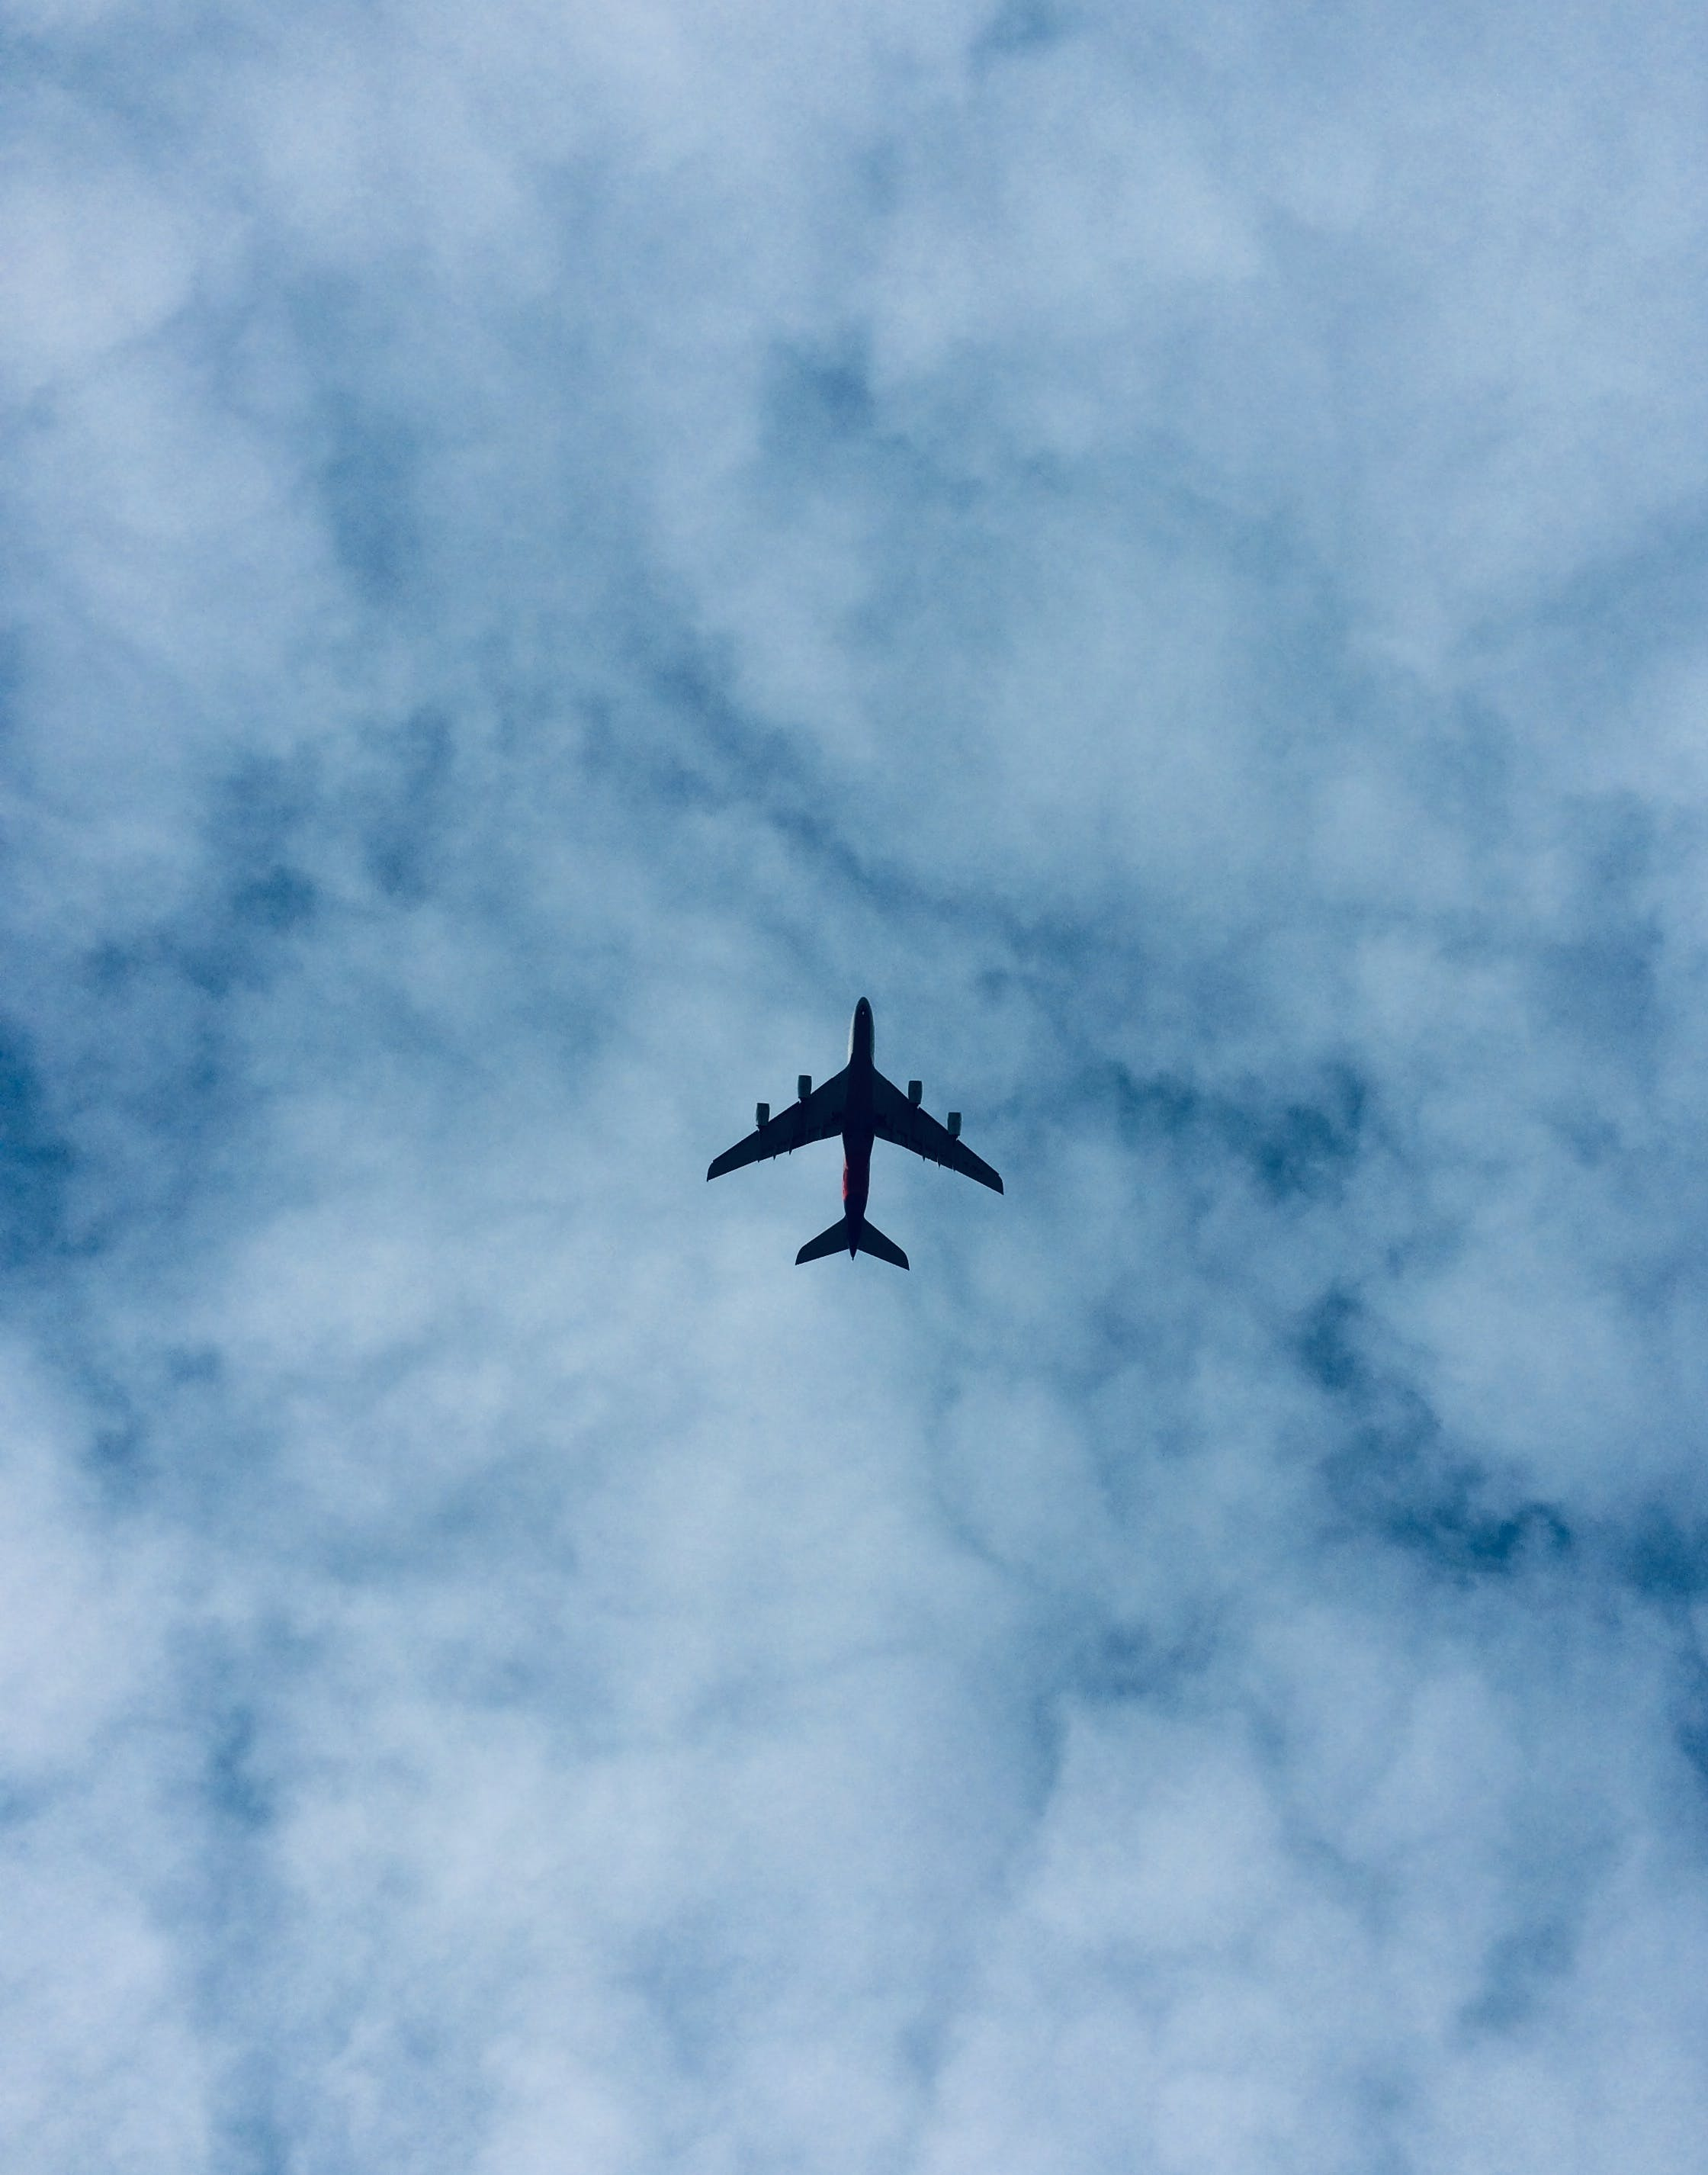 Silhouette of Airplane